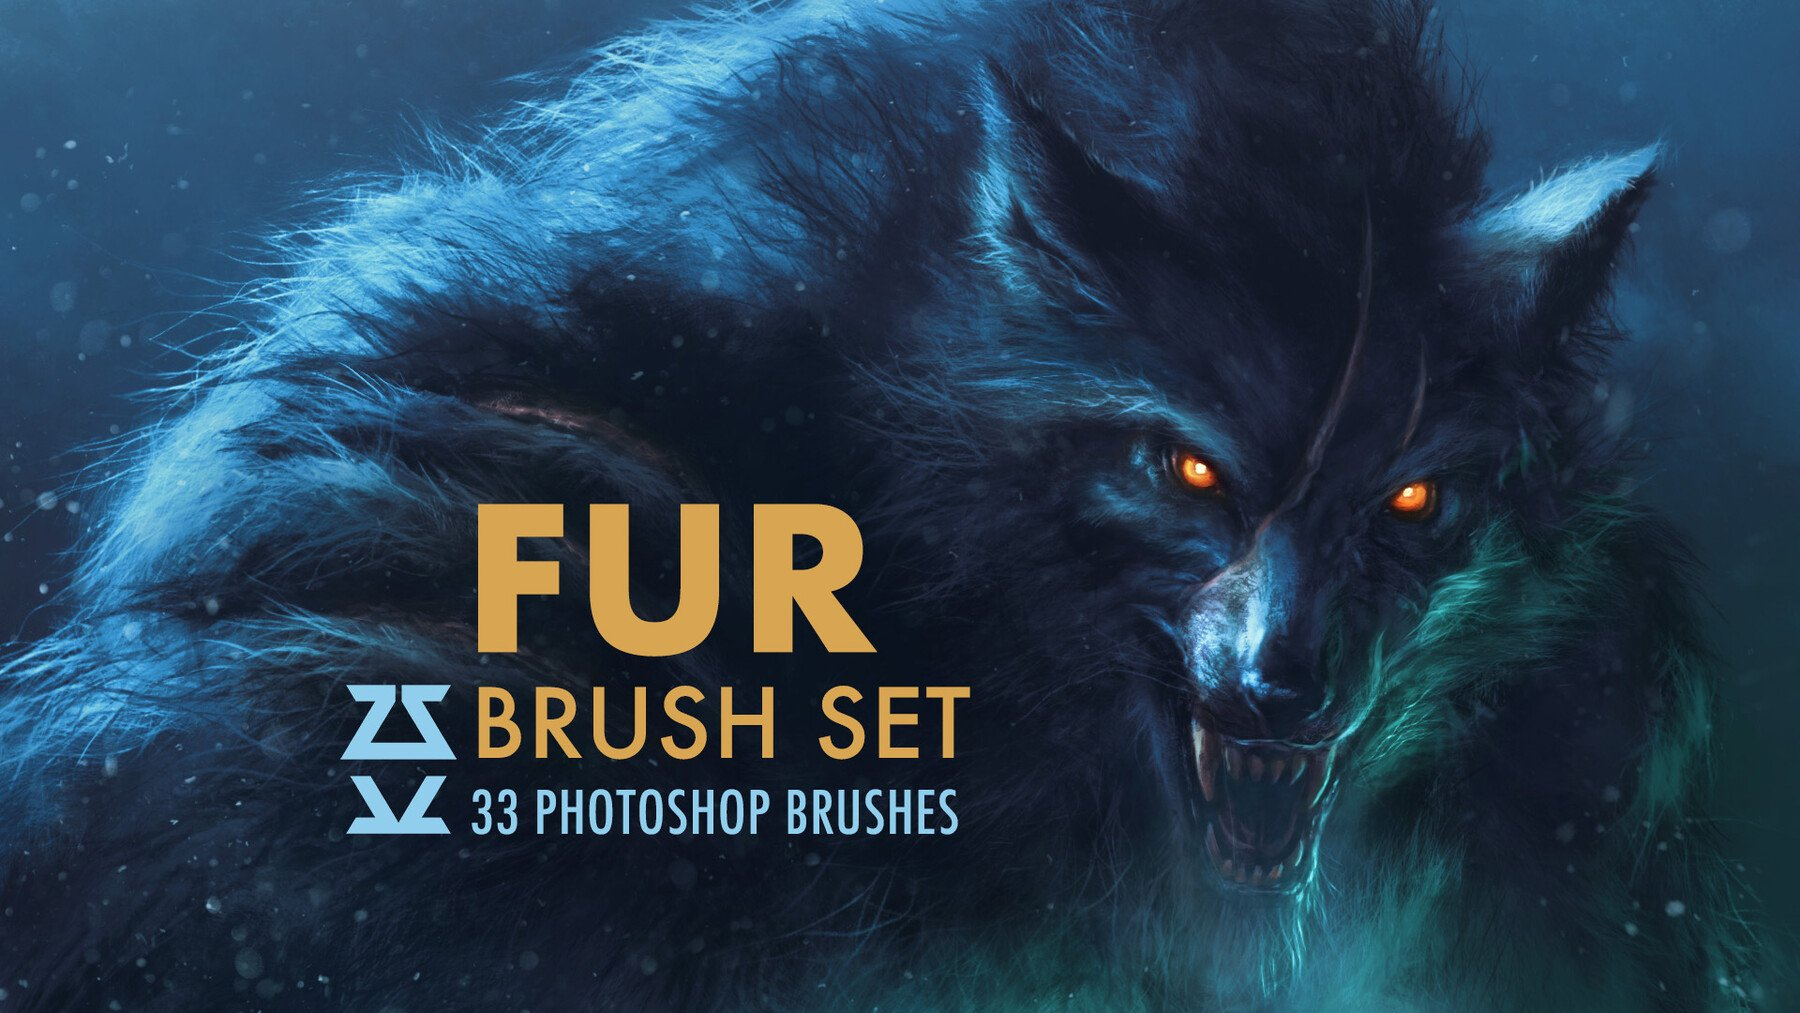 Image of a werewolf with the name of the brush pack